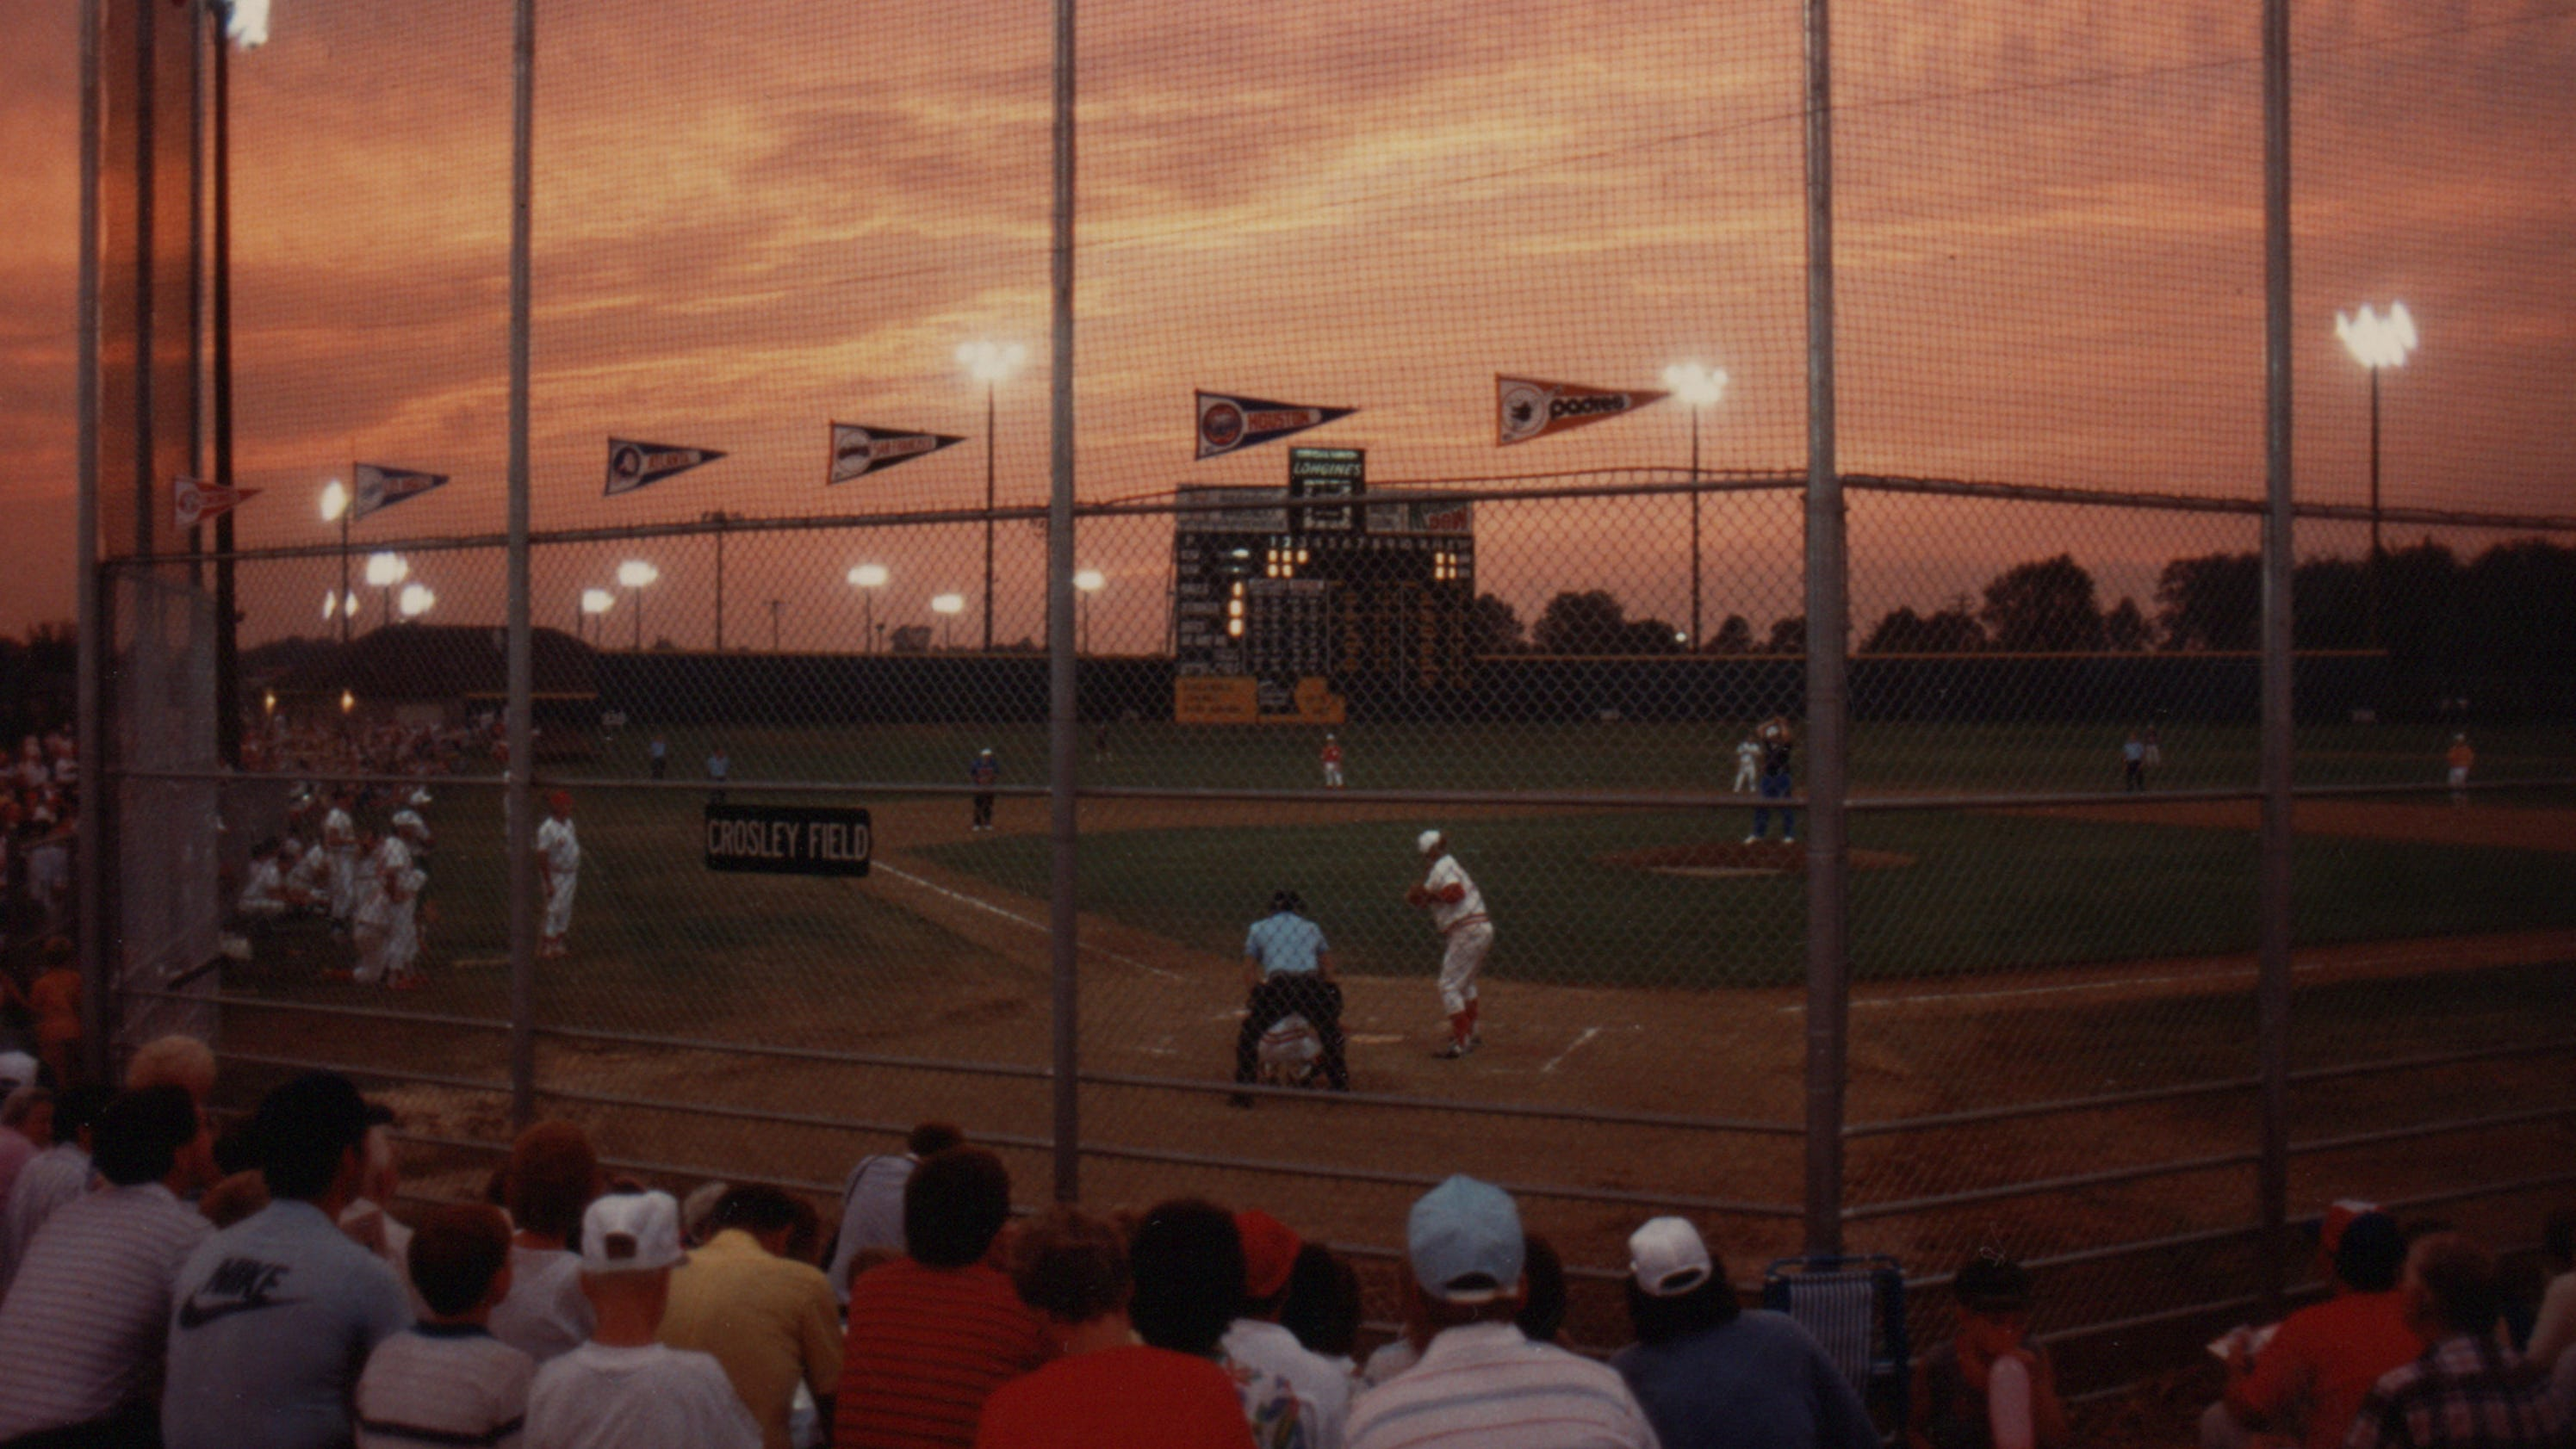 Crosley field lives on in blue ash malvernweather Image collections